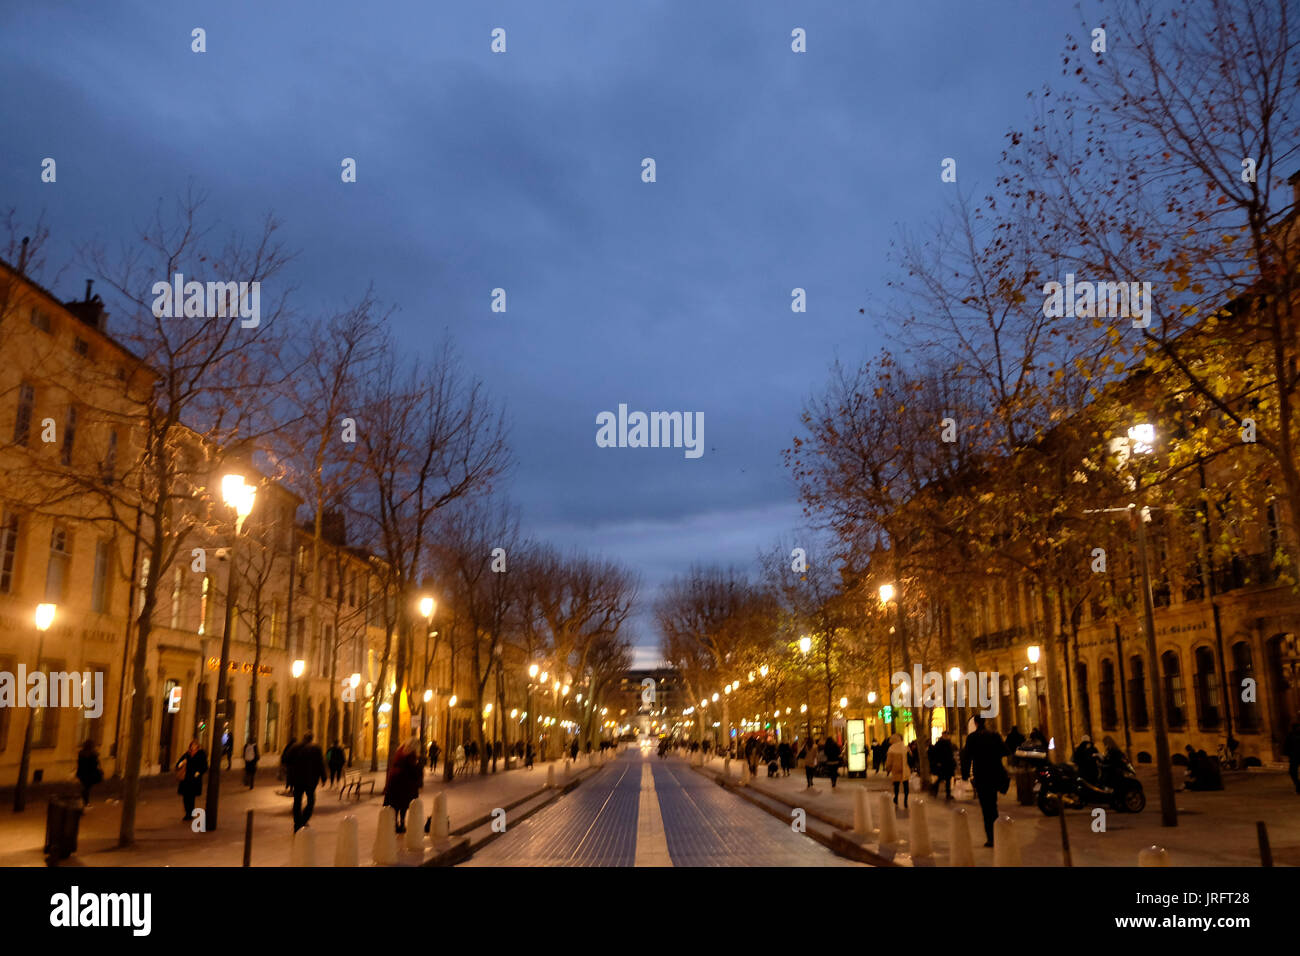 A winter's night on the Cours Mirabeau after a cold rain in the city of Aix-en-Provence, a gem of the Provence - Stock Image